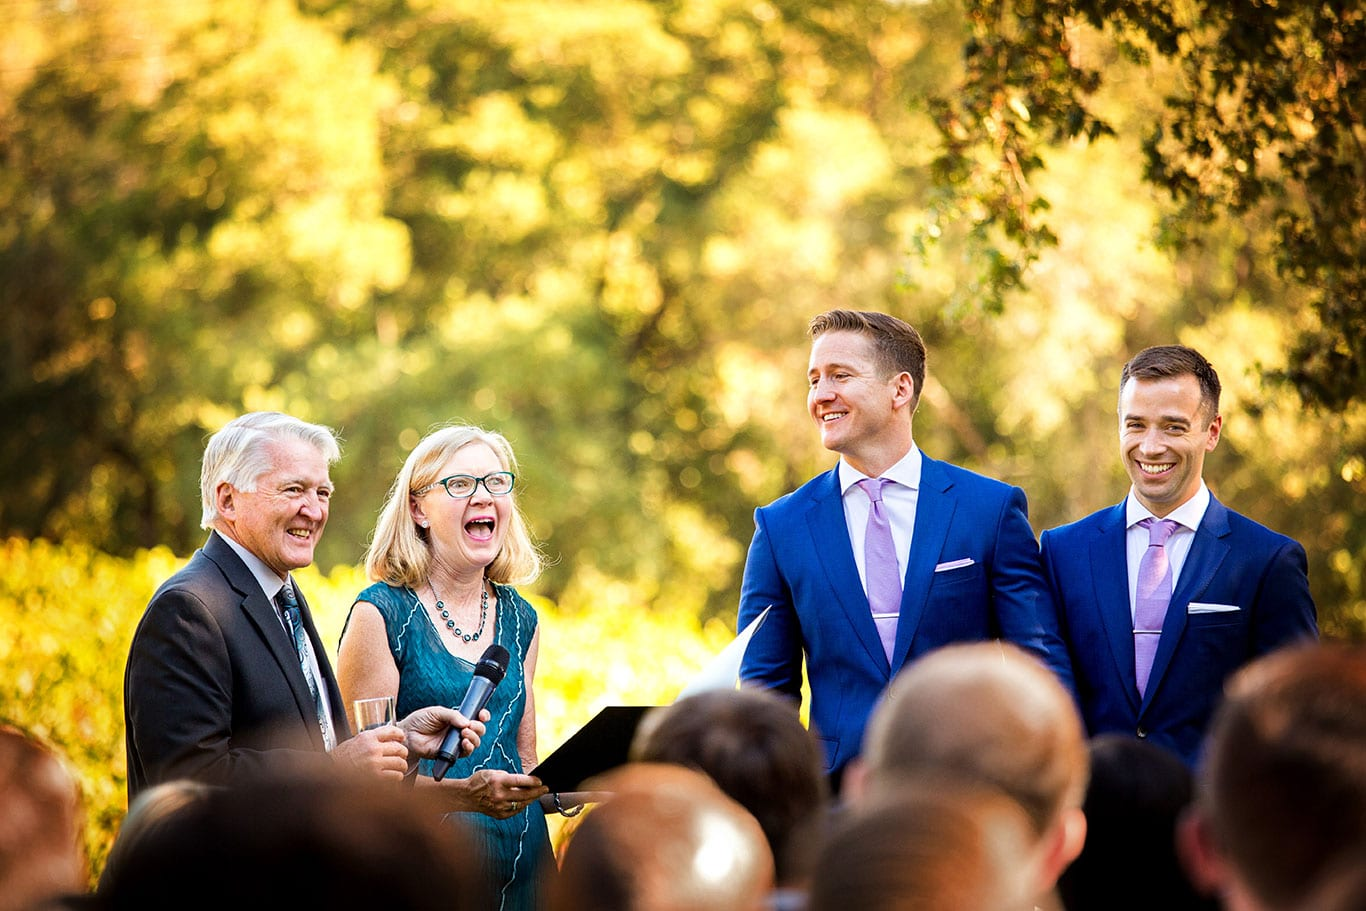 Wedding Ceremony at Arista Winery in Healdsburg